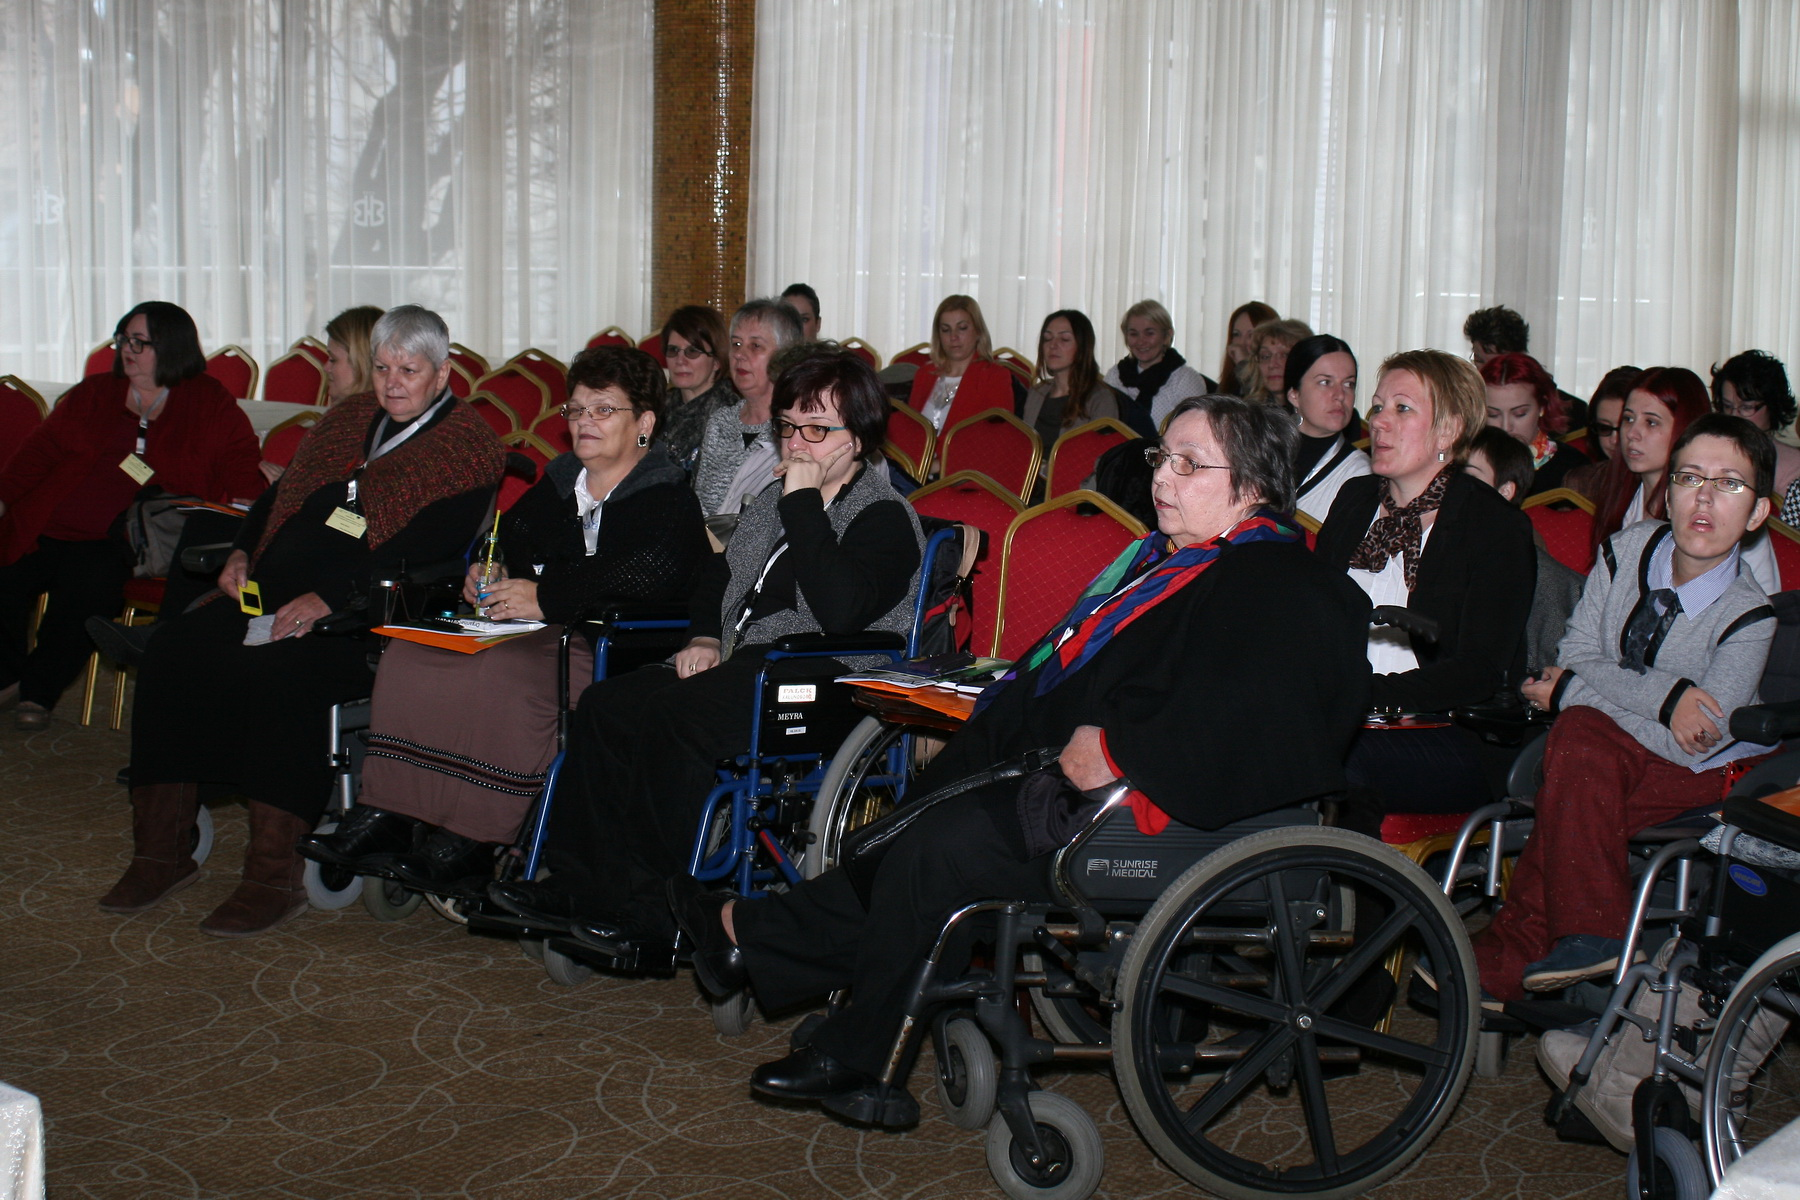 Women with disability discriminated in BiH